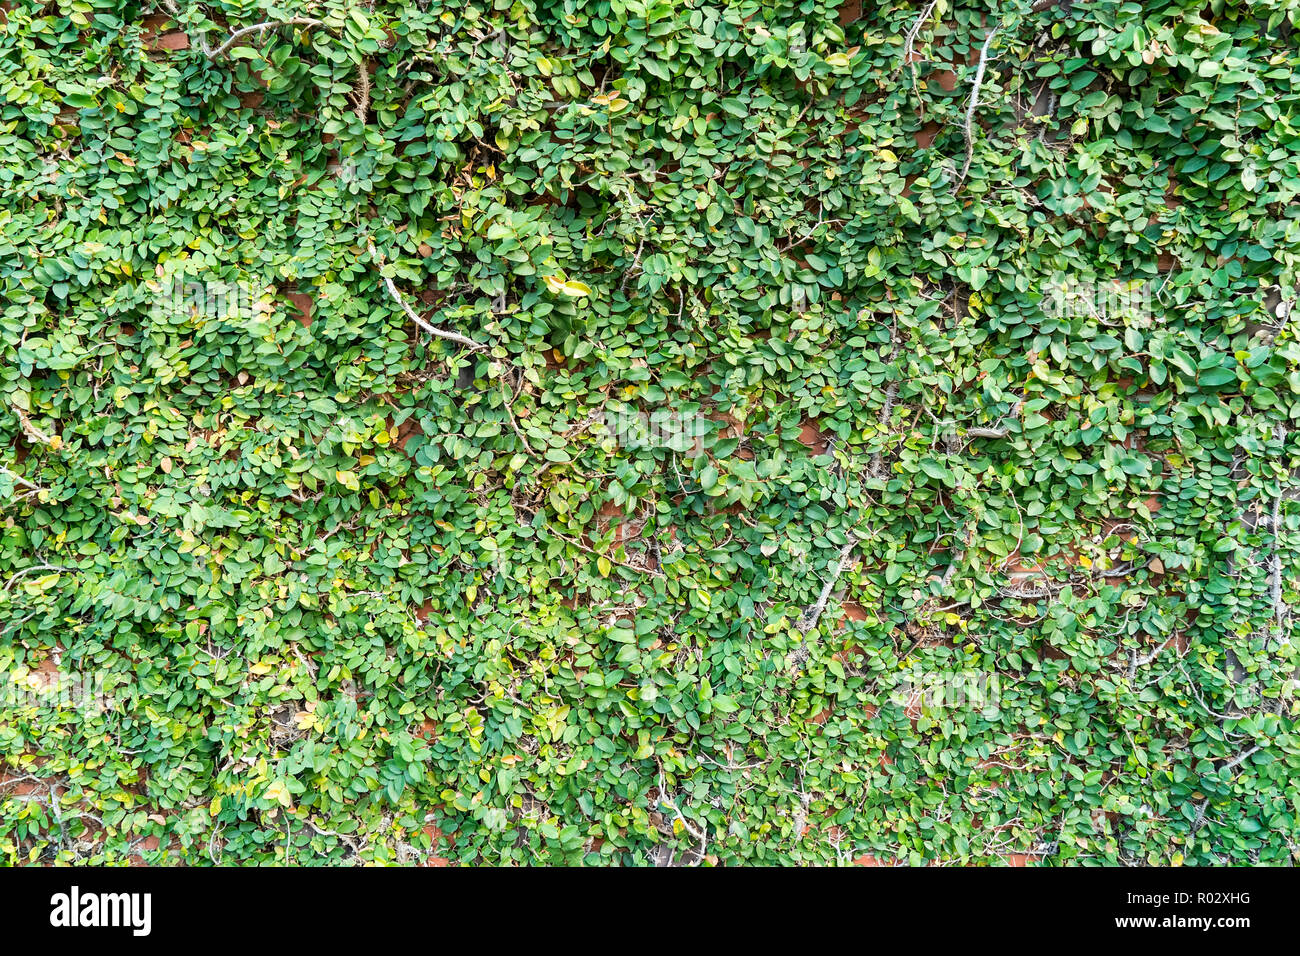 Background of Velcro green plant climbing on red wall - Stock Image